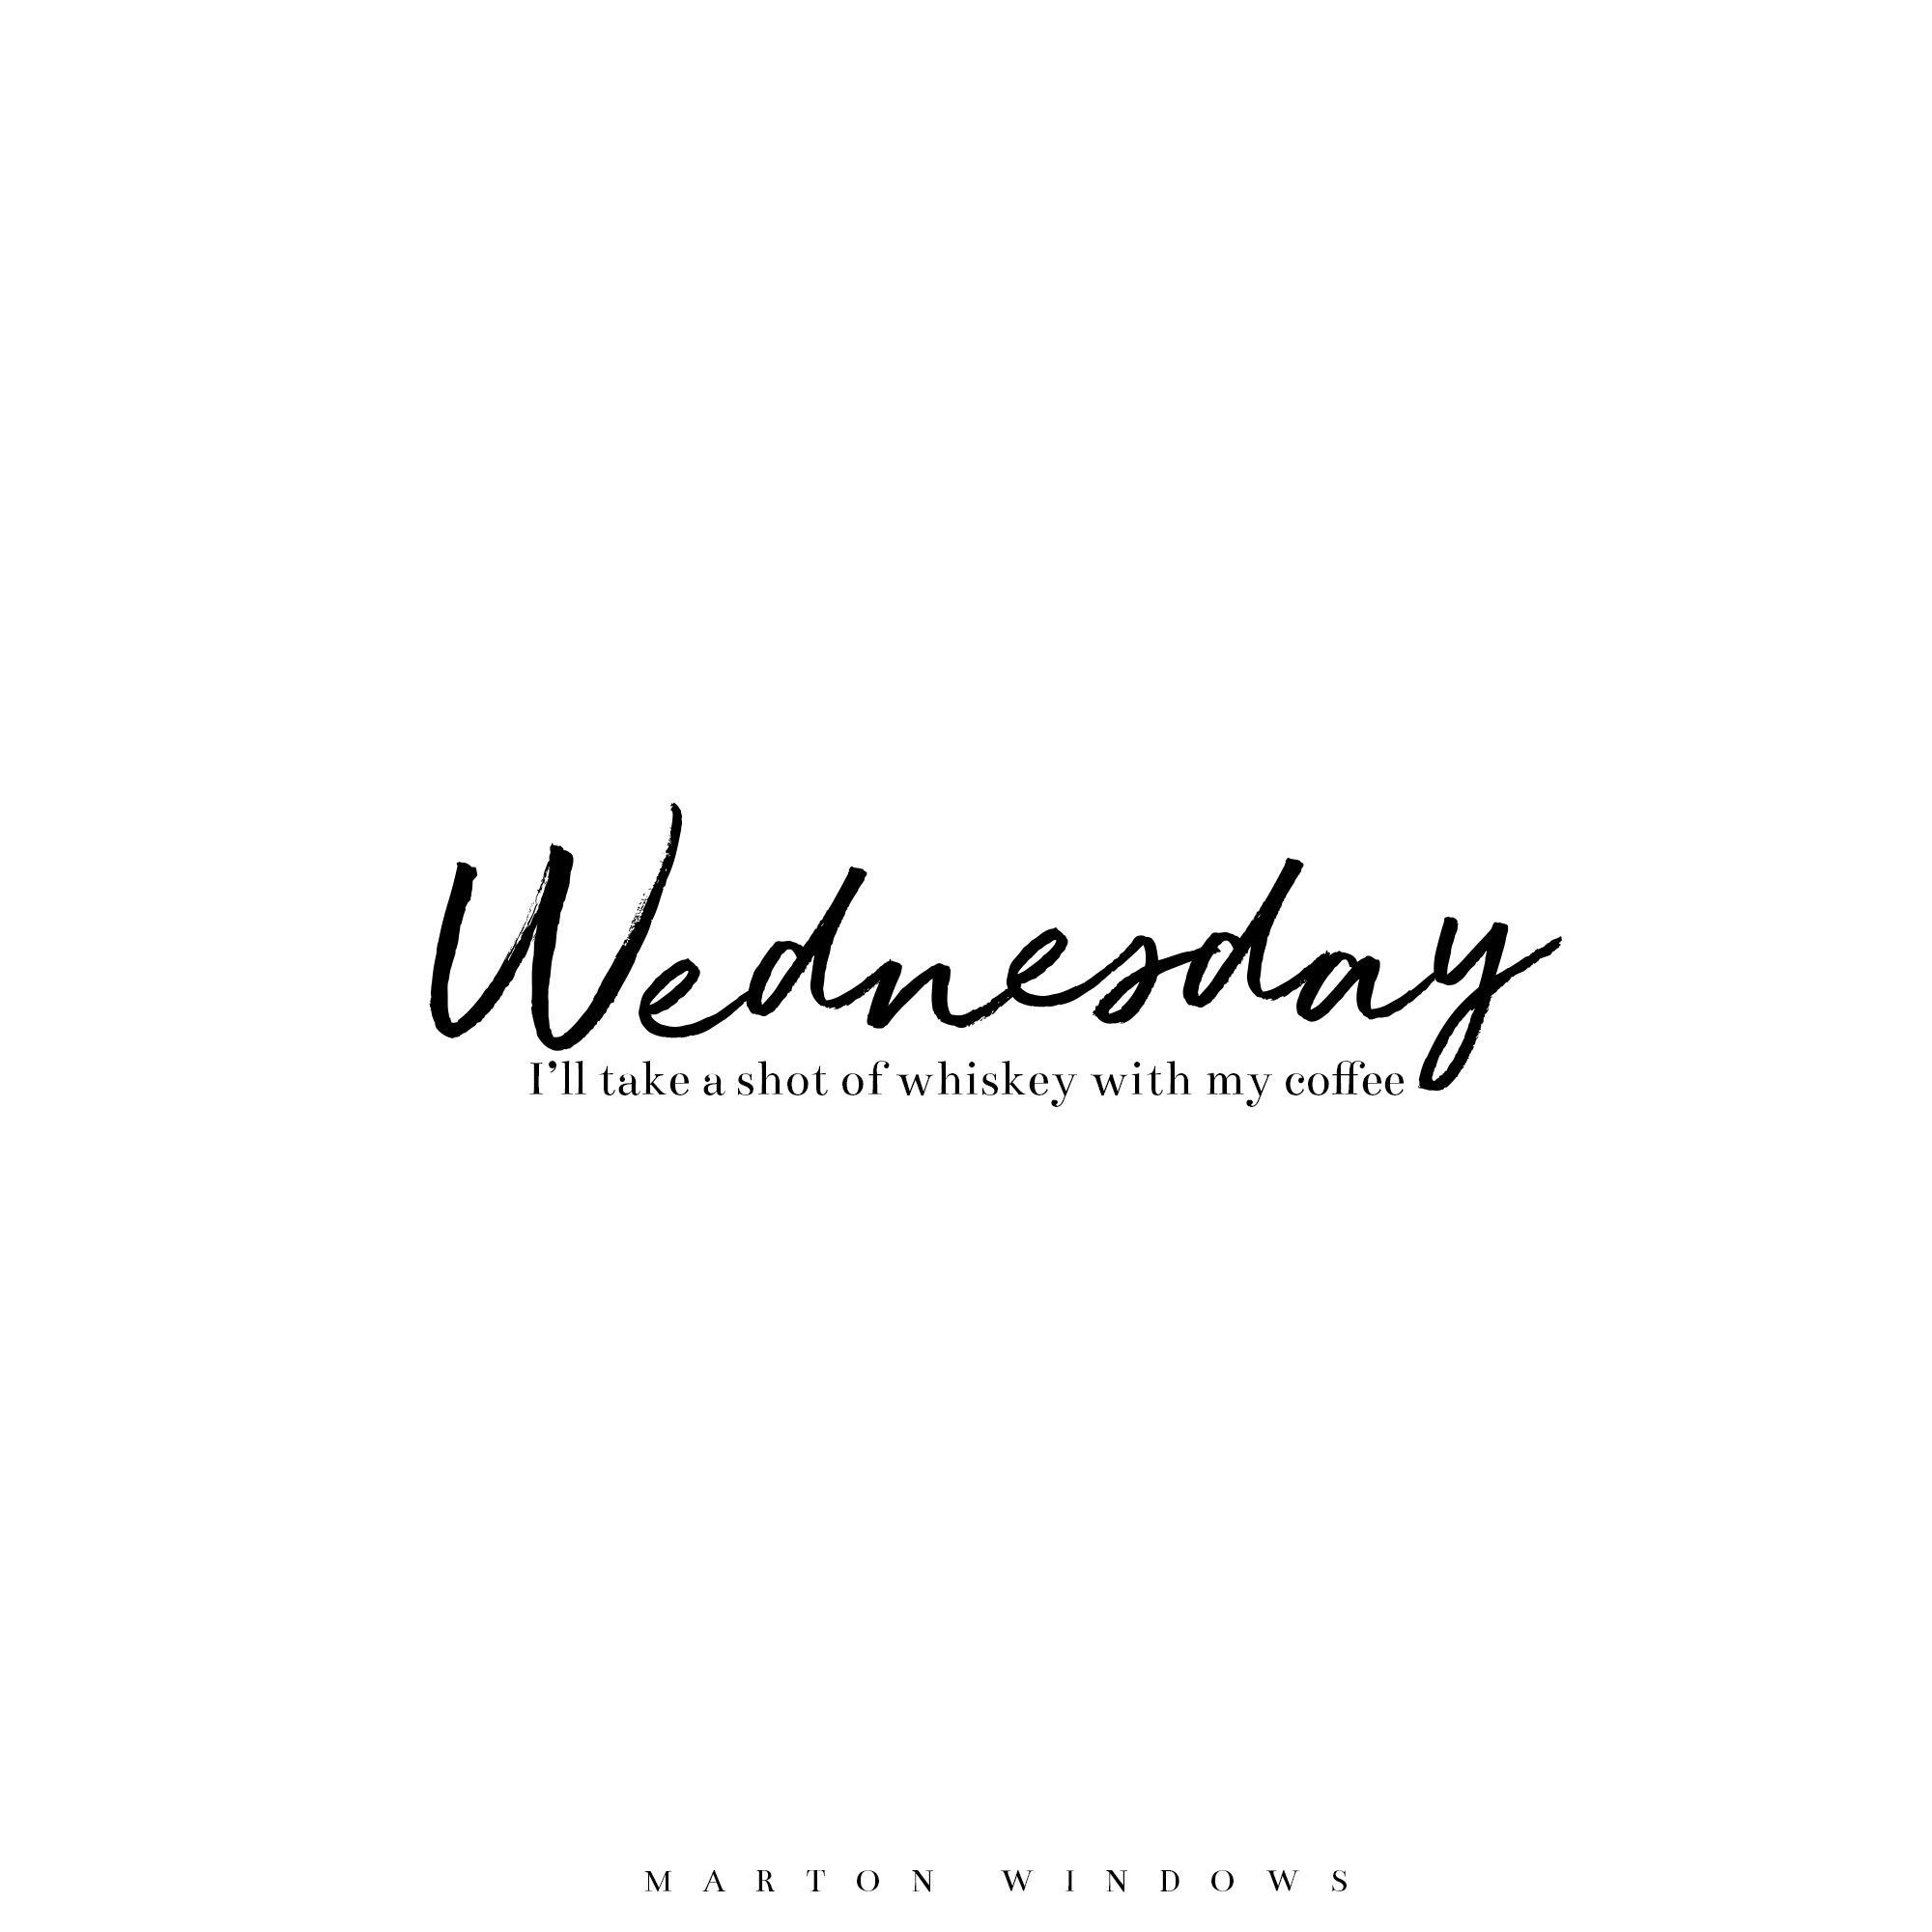 Wednesday Quotes Mid Hump Wednesday   Motivational Work Quotes   Black and White  Wednesday Quotes